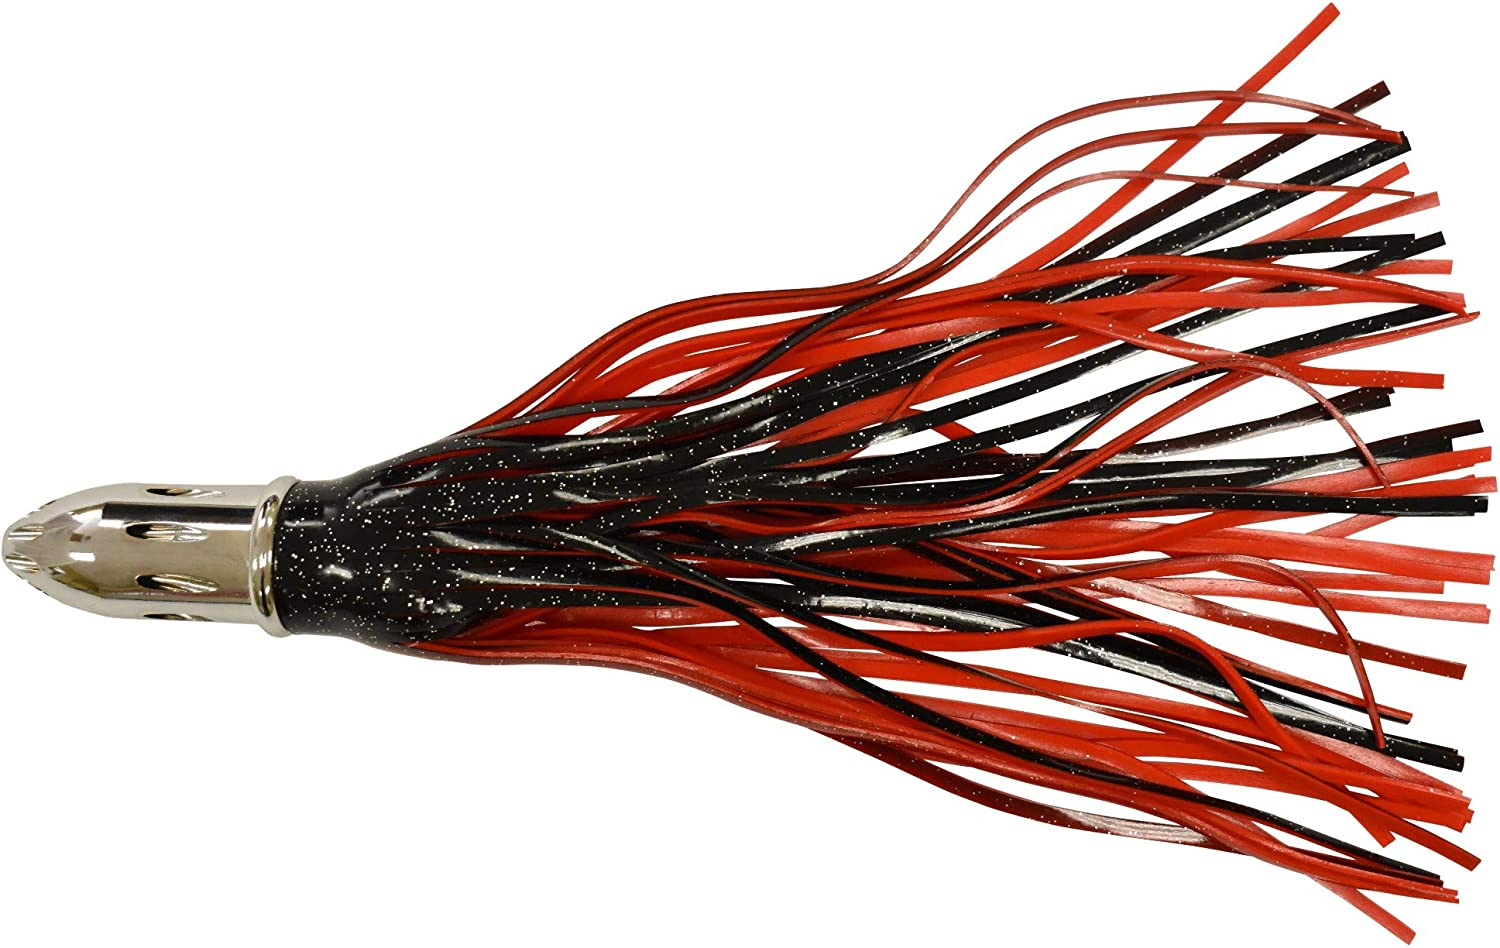 Offshore Fishing Lure 14 red and Black high Speed Slotted Jet Head Killer